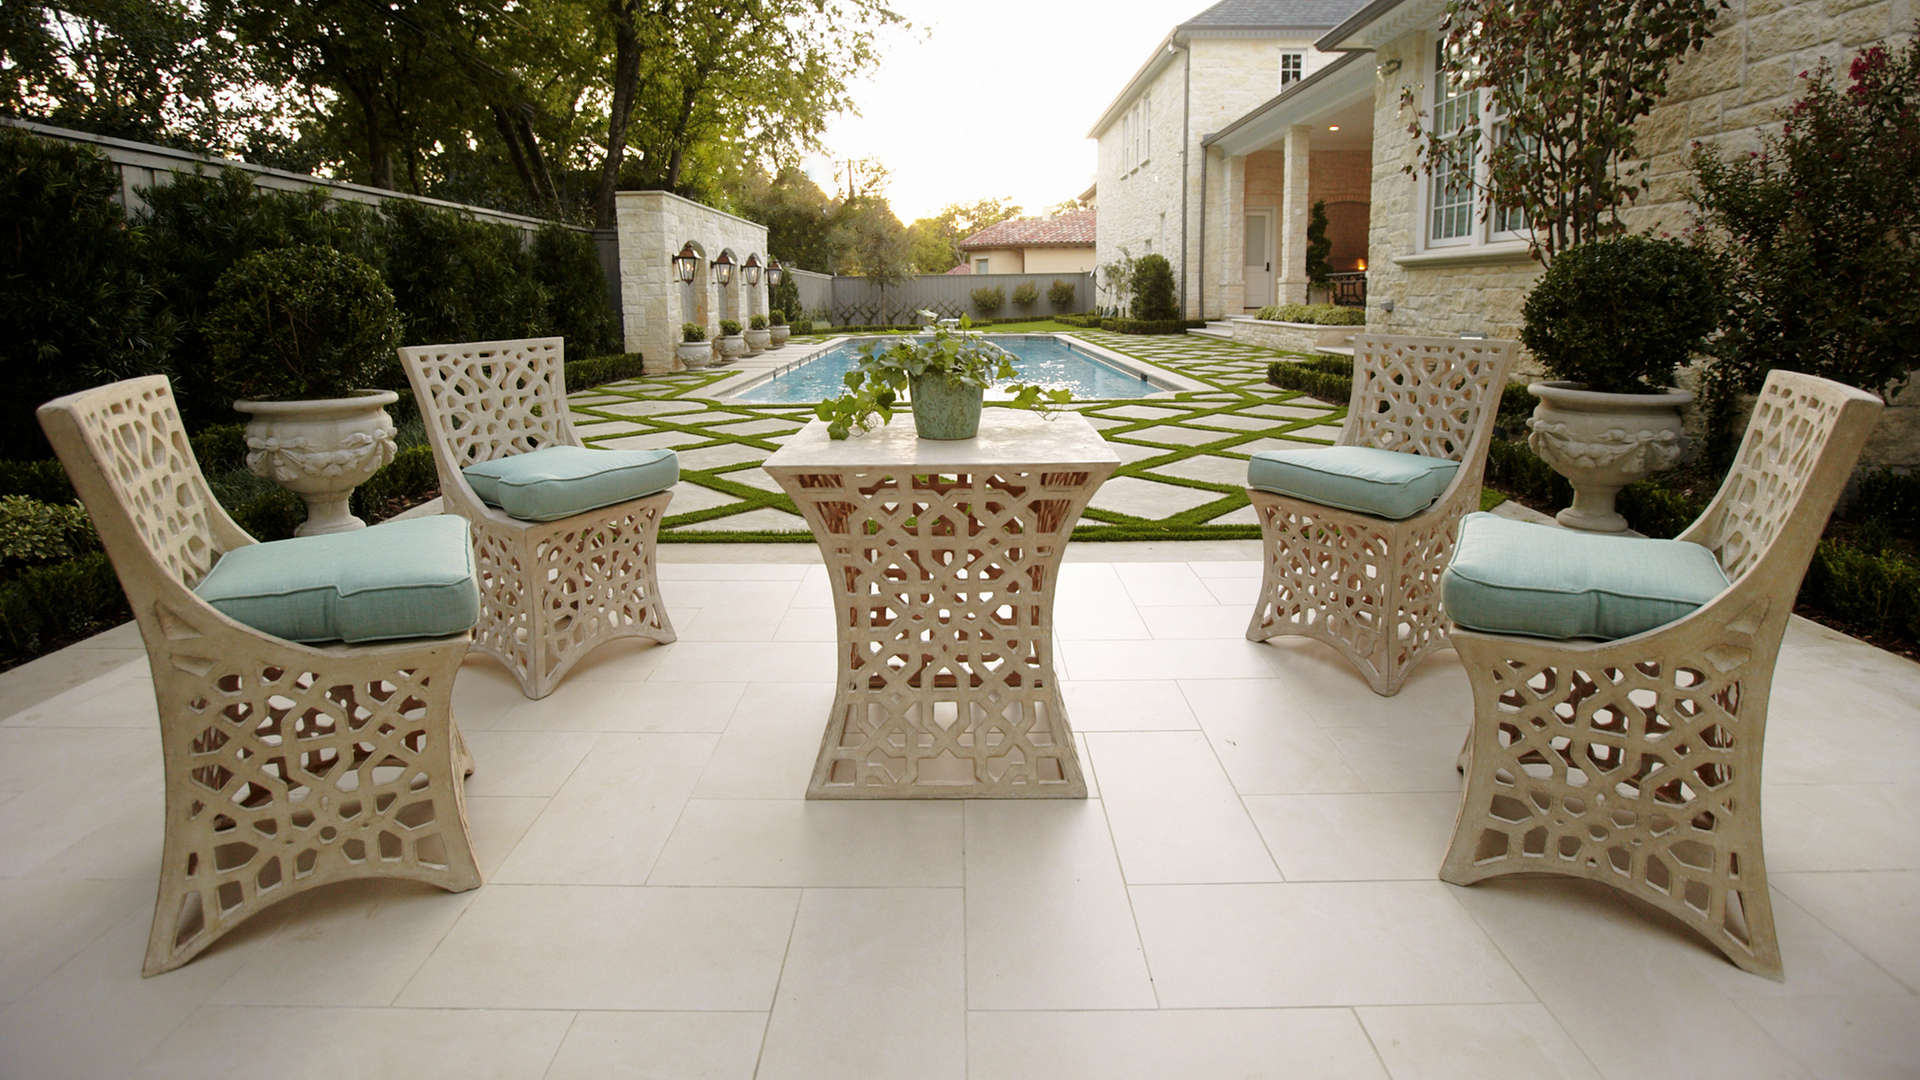 Enhance outdoor living experience. Parisian Style Landscape - Landscape Design - Dallas, Texas